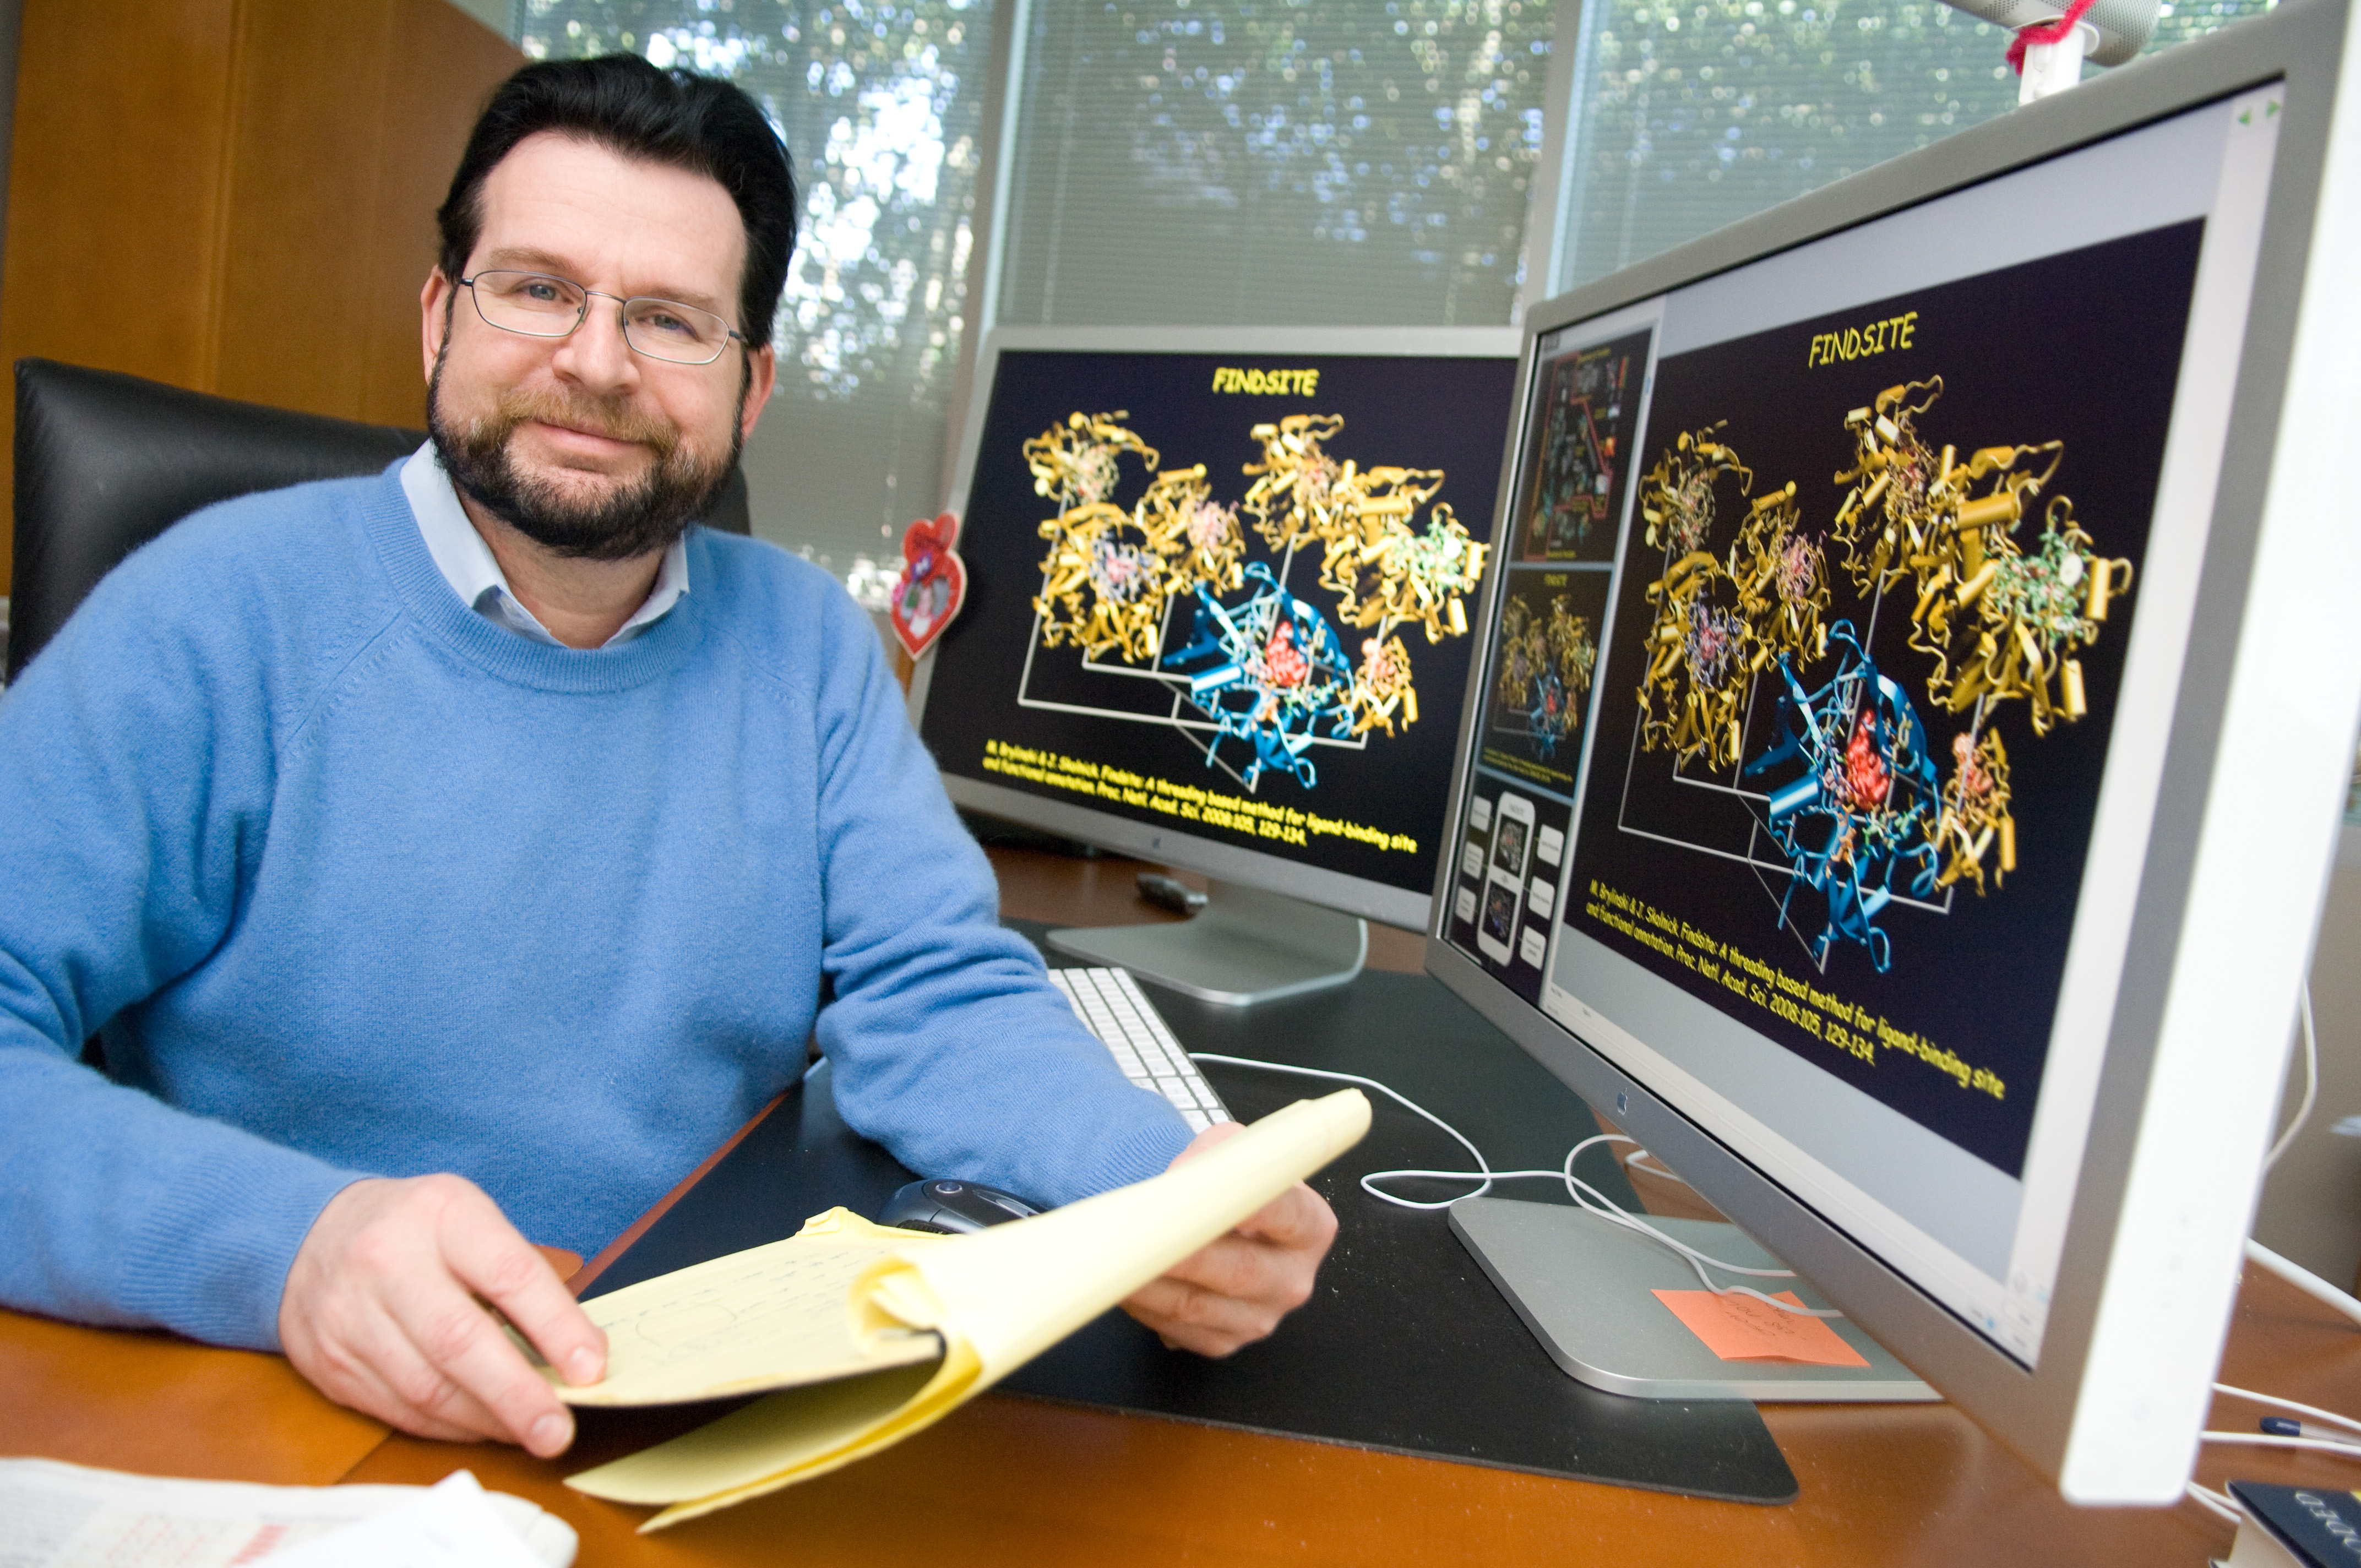 Jeffrey Skolnick, PhD, Mary and Maisie Gibson Chair, Georgia Research Alliance Eminent Scholar in Computational Systems Biology in the School of Biology at Georgia Tech